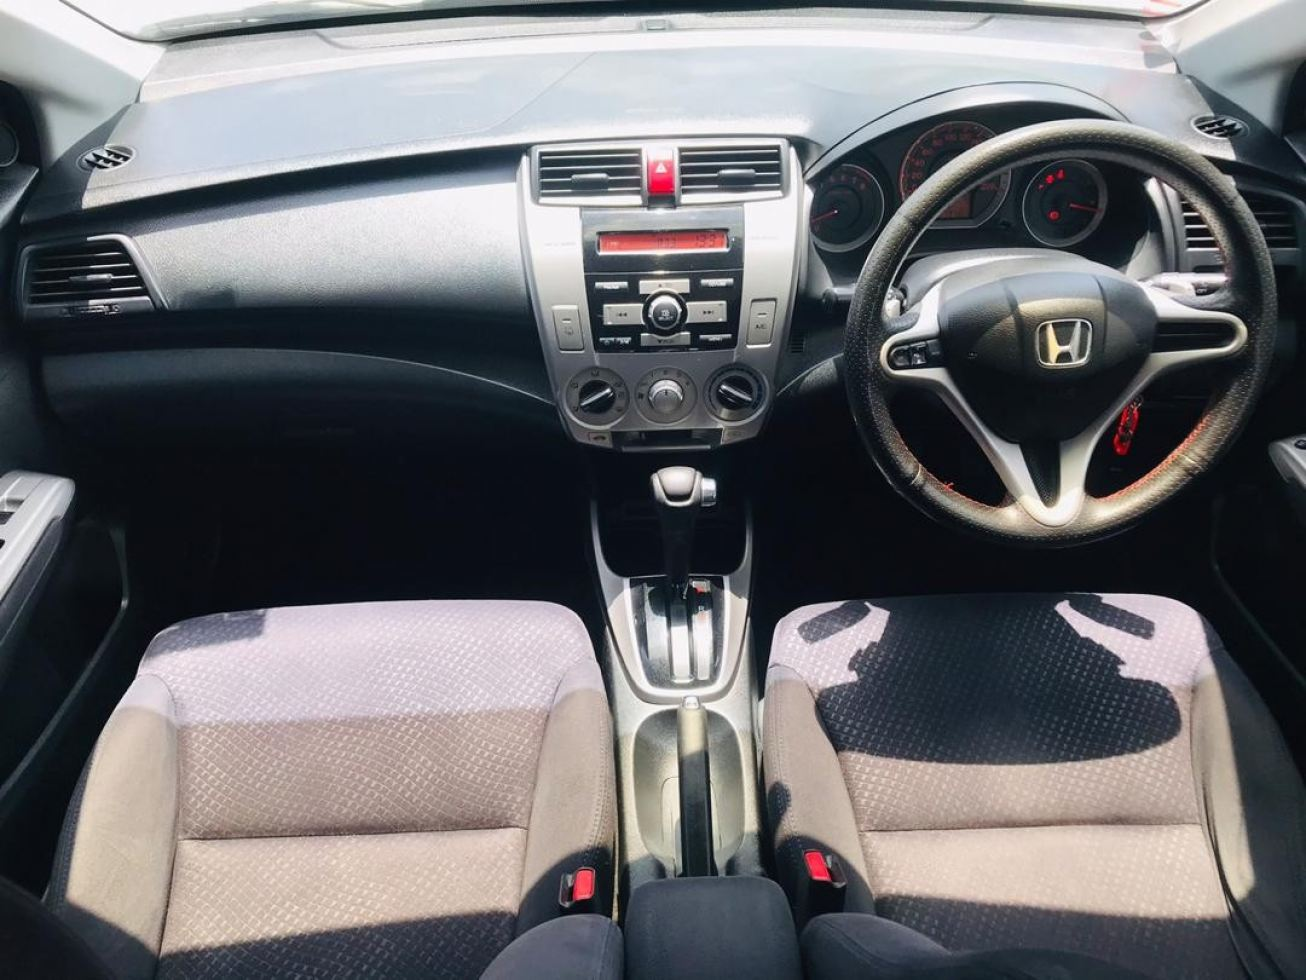 2012 Honda CITY 1.5 E MODULO FACELIFT (A)